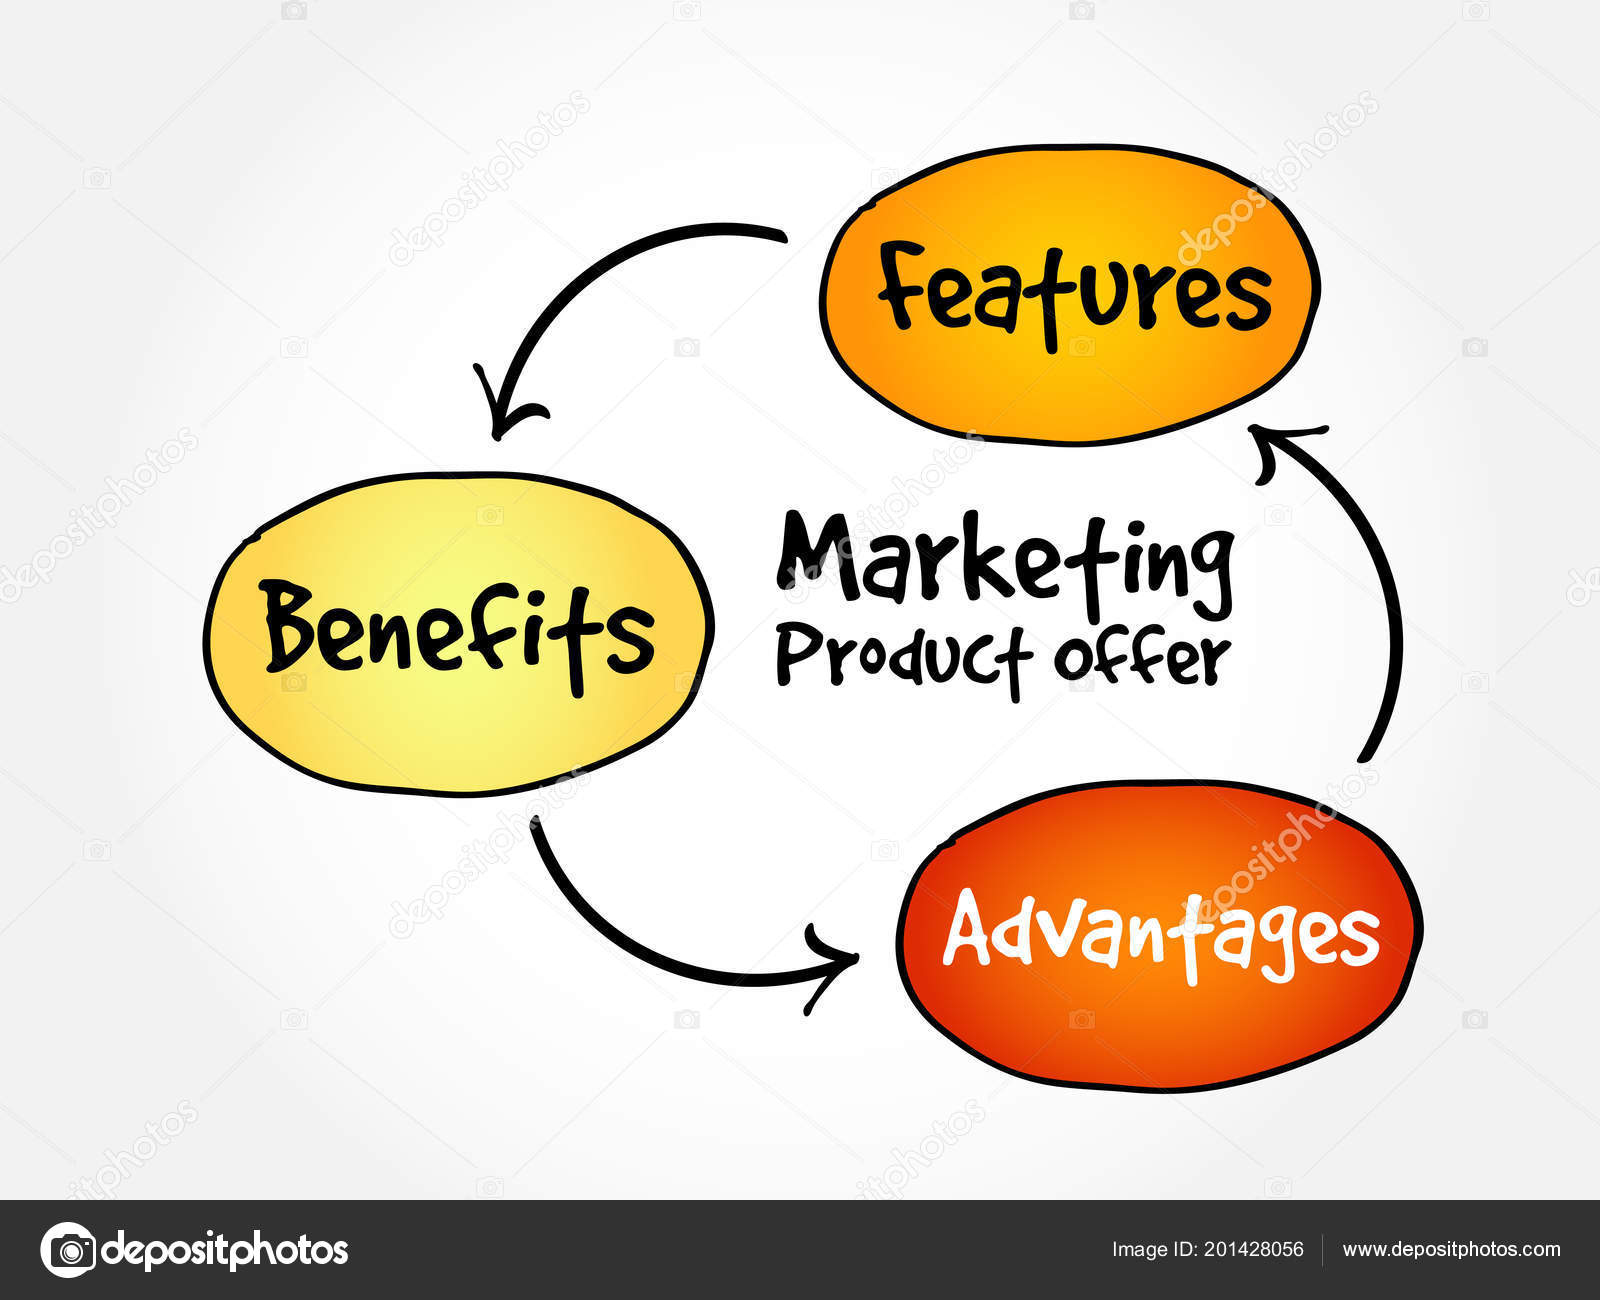 Product Concept Map.Marketing Product Offer Mind Map Flowchart Business Concept